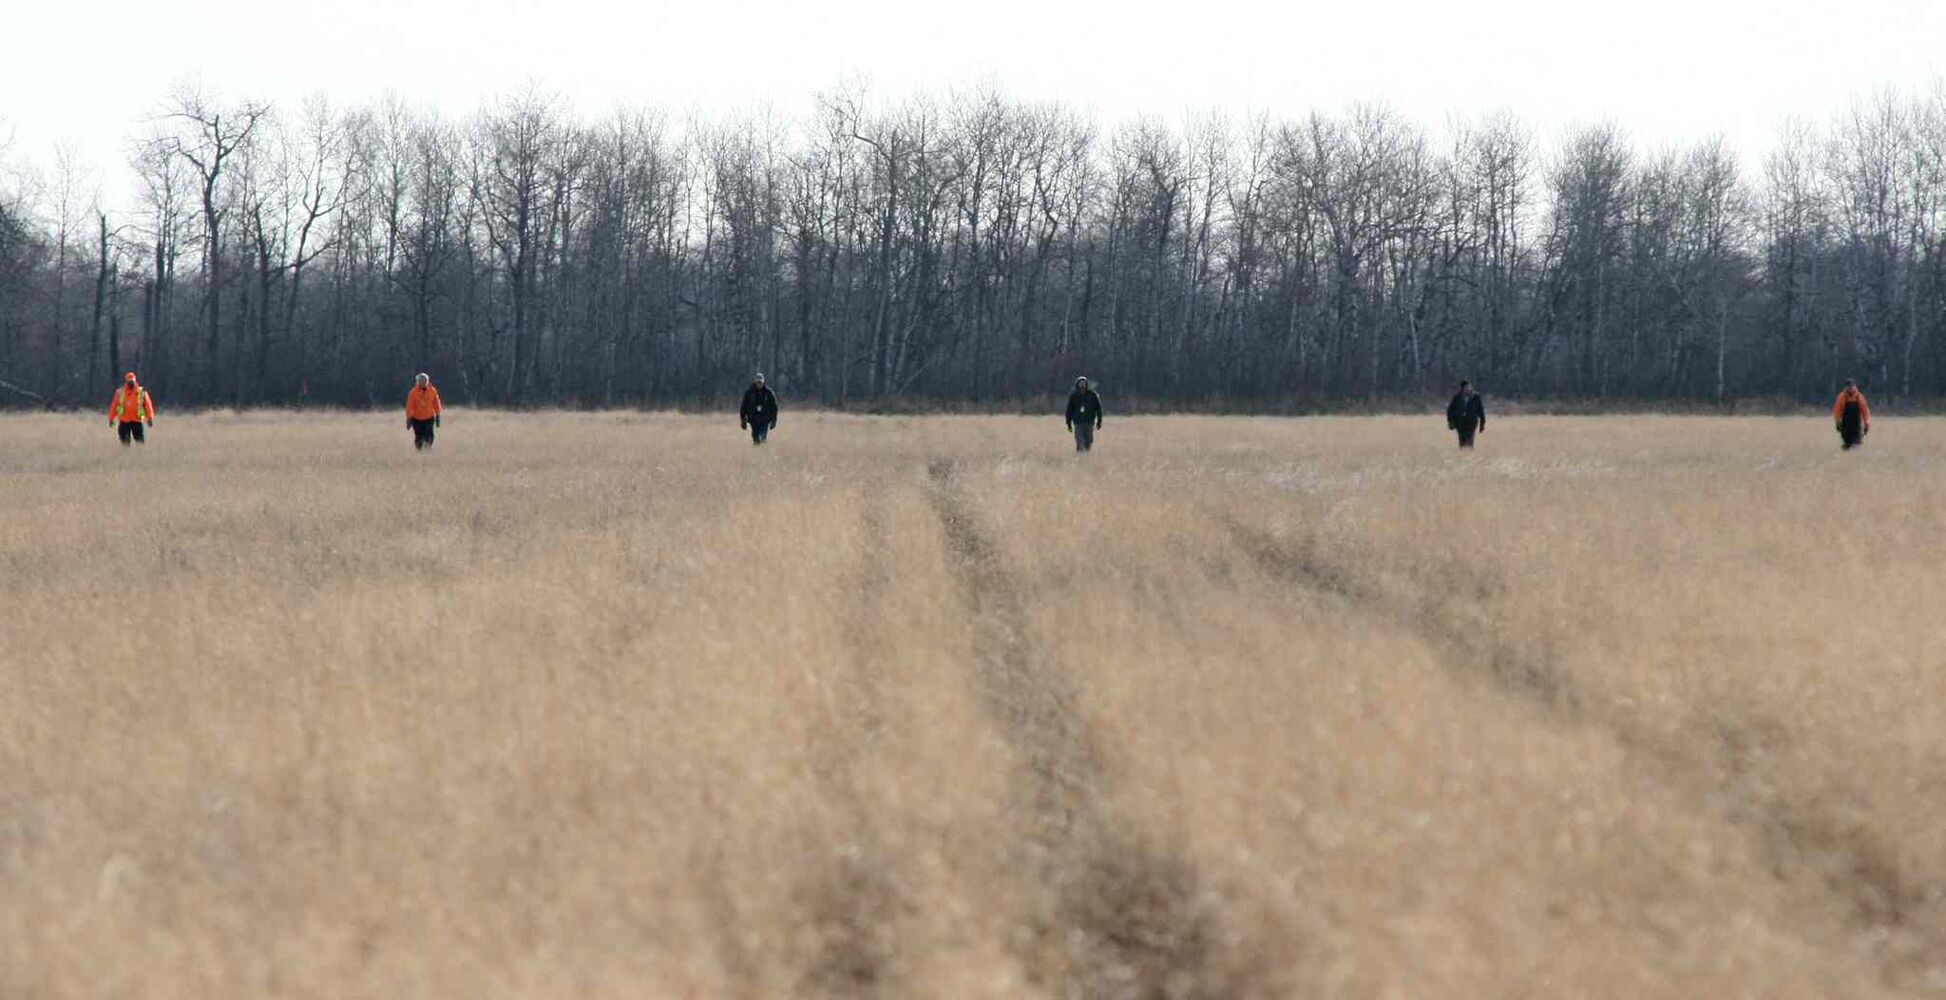 Volunteer search and rescue teams fan out in a field north east of the rural home of Chase Martens, who went missing on Tuesday evening from his back yard. (Matt Goerzen/Brandon Sun)